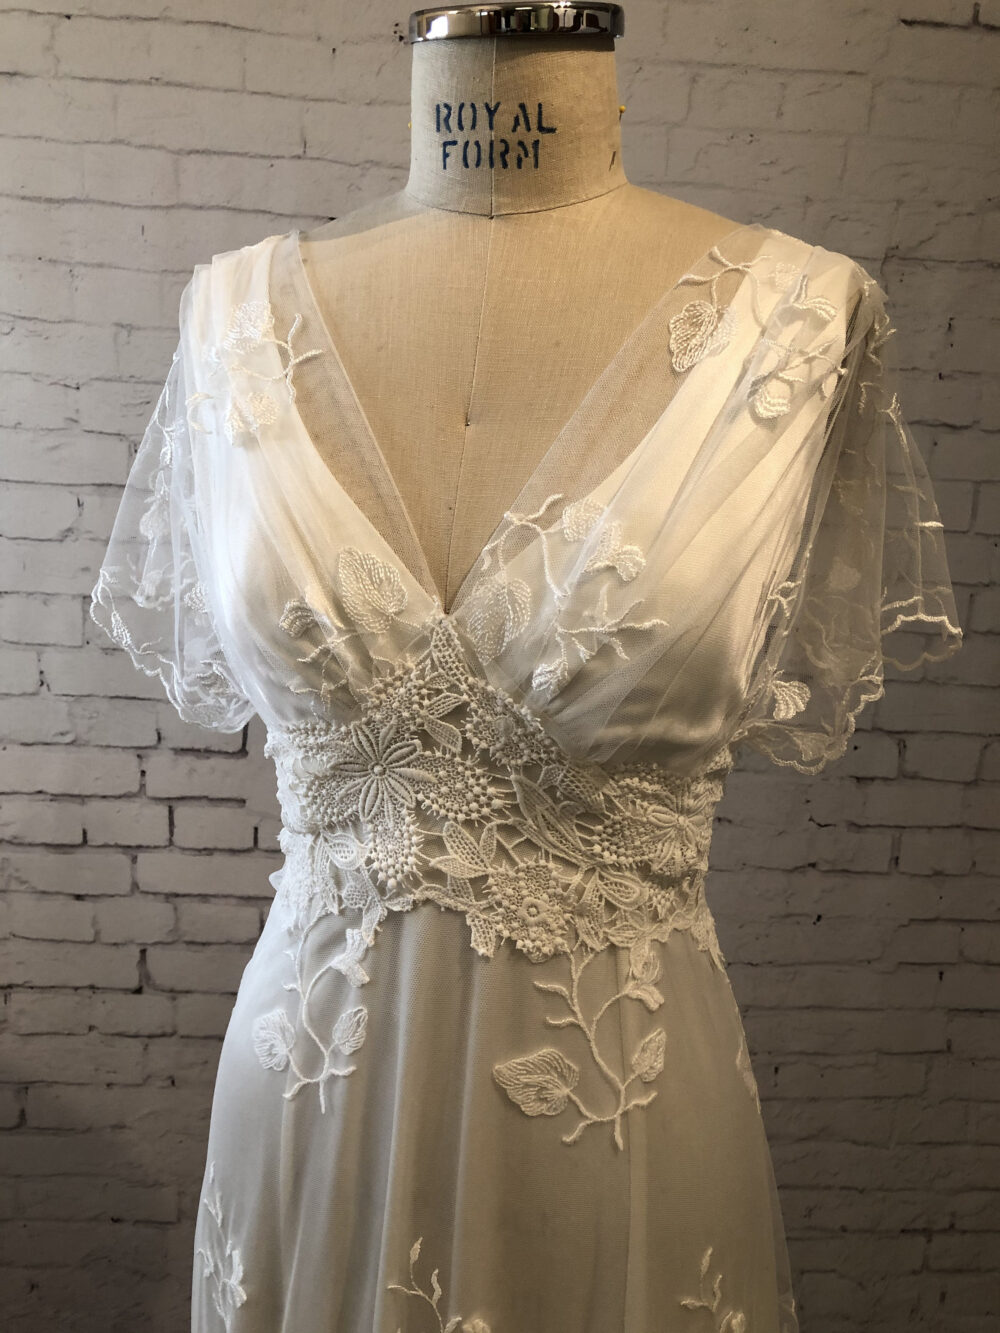 Lace Wedding Gown Dress With Sleeves, Buttons Up Back & Train. Vintage Style, Boho Classic Simple. Helene Gown